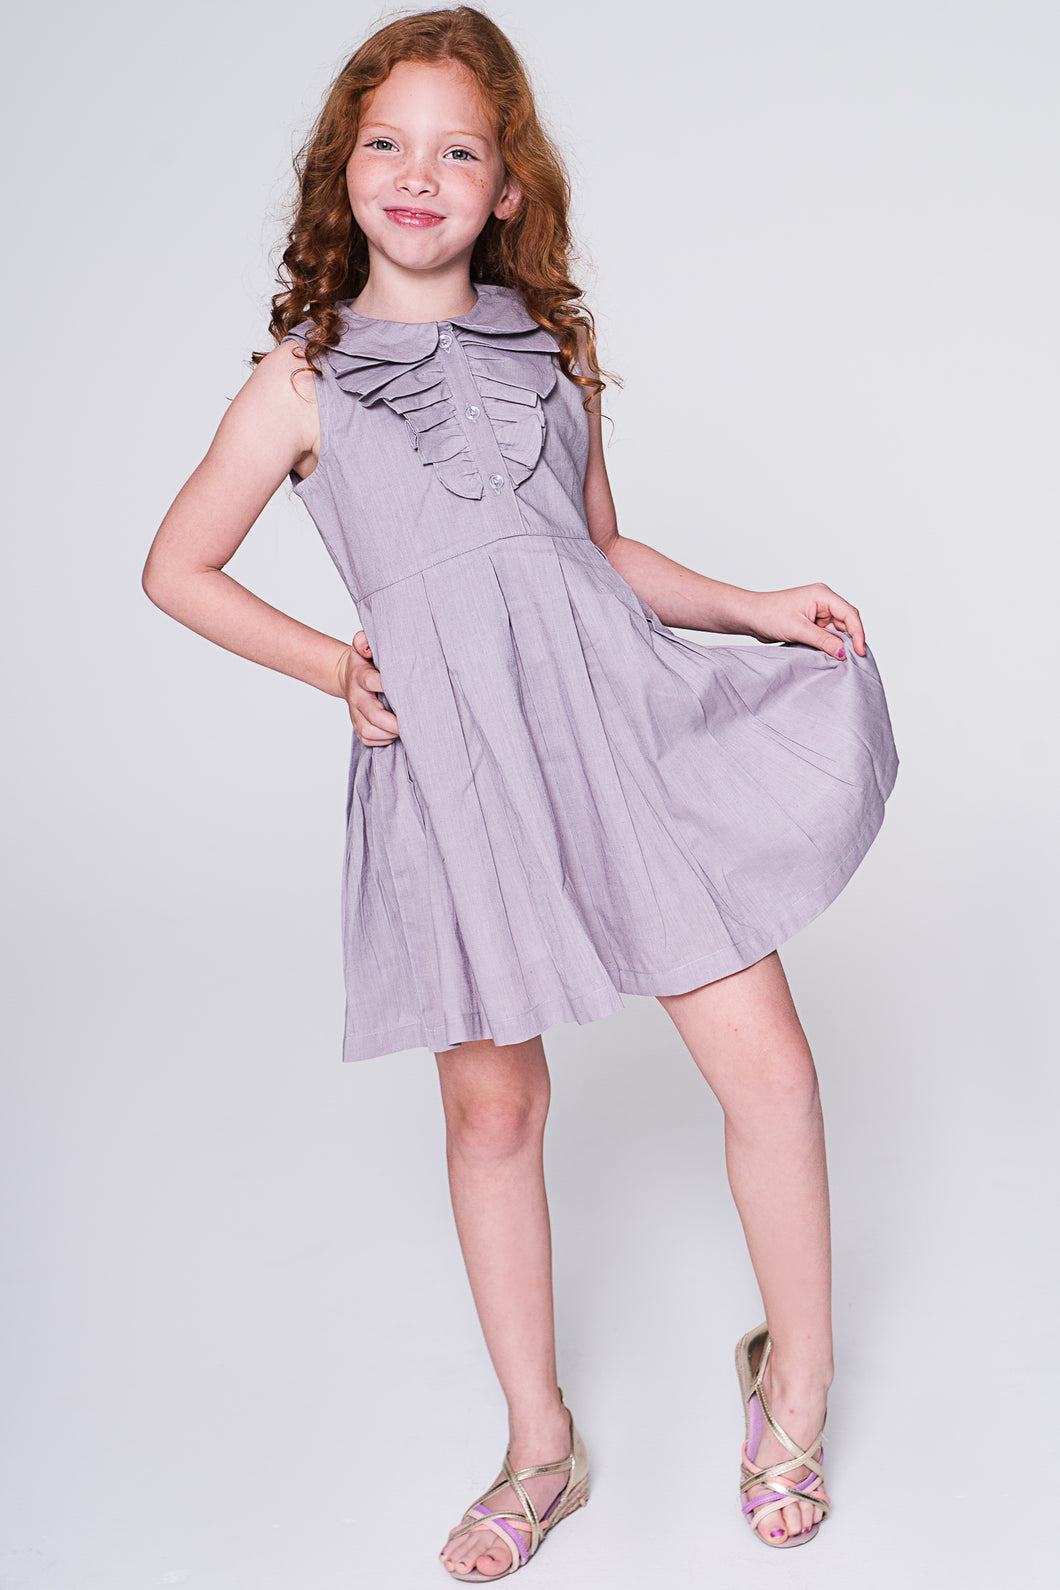 Lavender Dress with Frill Detail - Kids Wholesale Boutique Clothing, Dress - Girls Dresses, Yo Baby Wholesale - Yo Baby